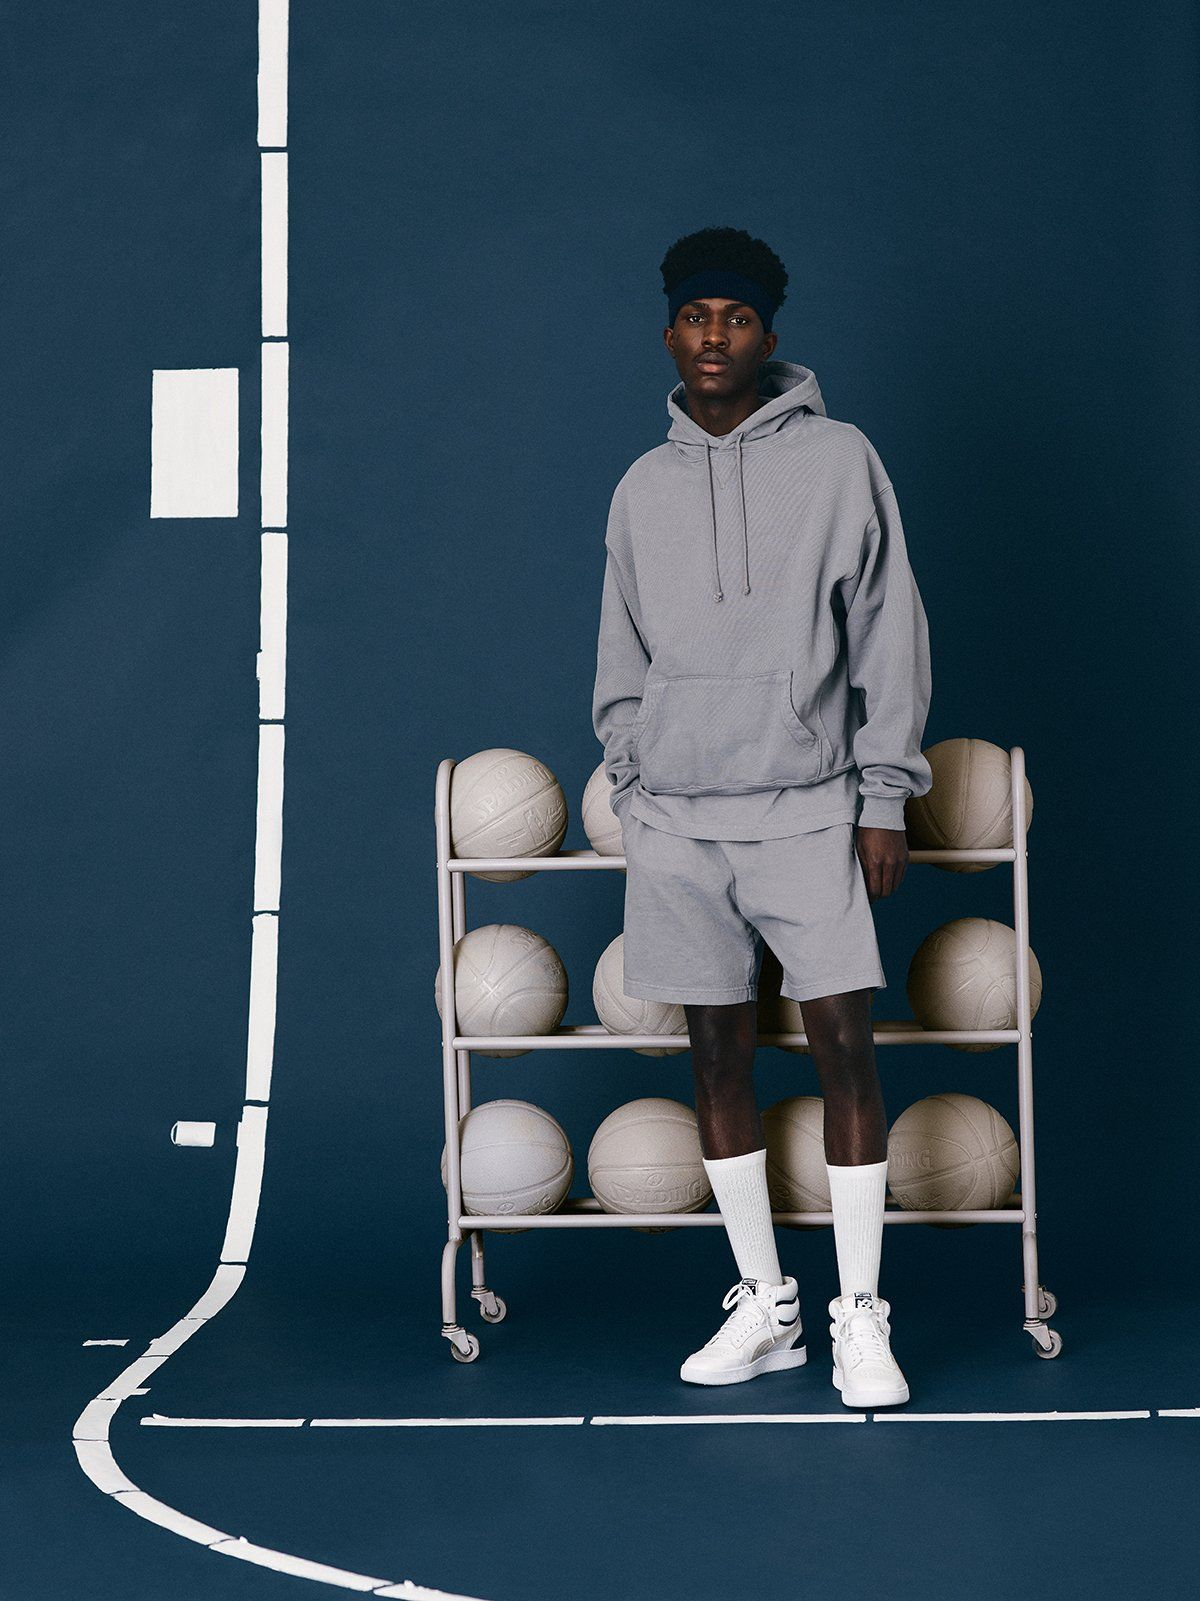 News Ralph Sampson Sport Editorial Tennis Fashion Editorial